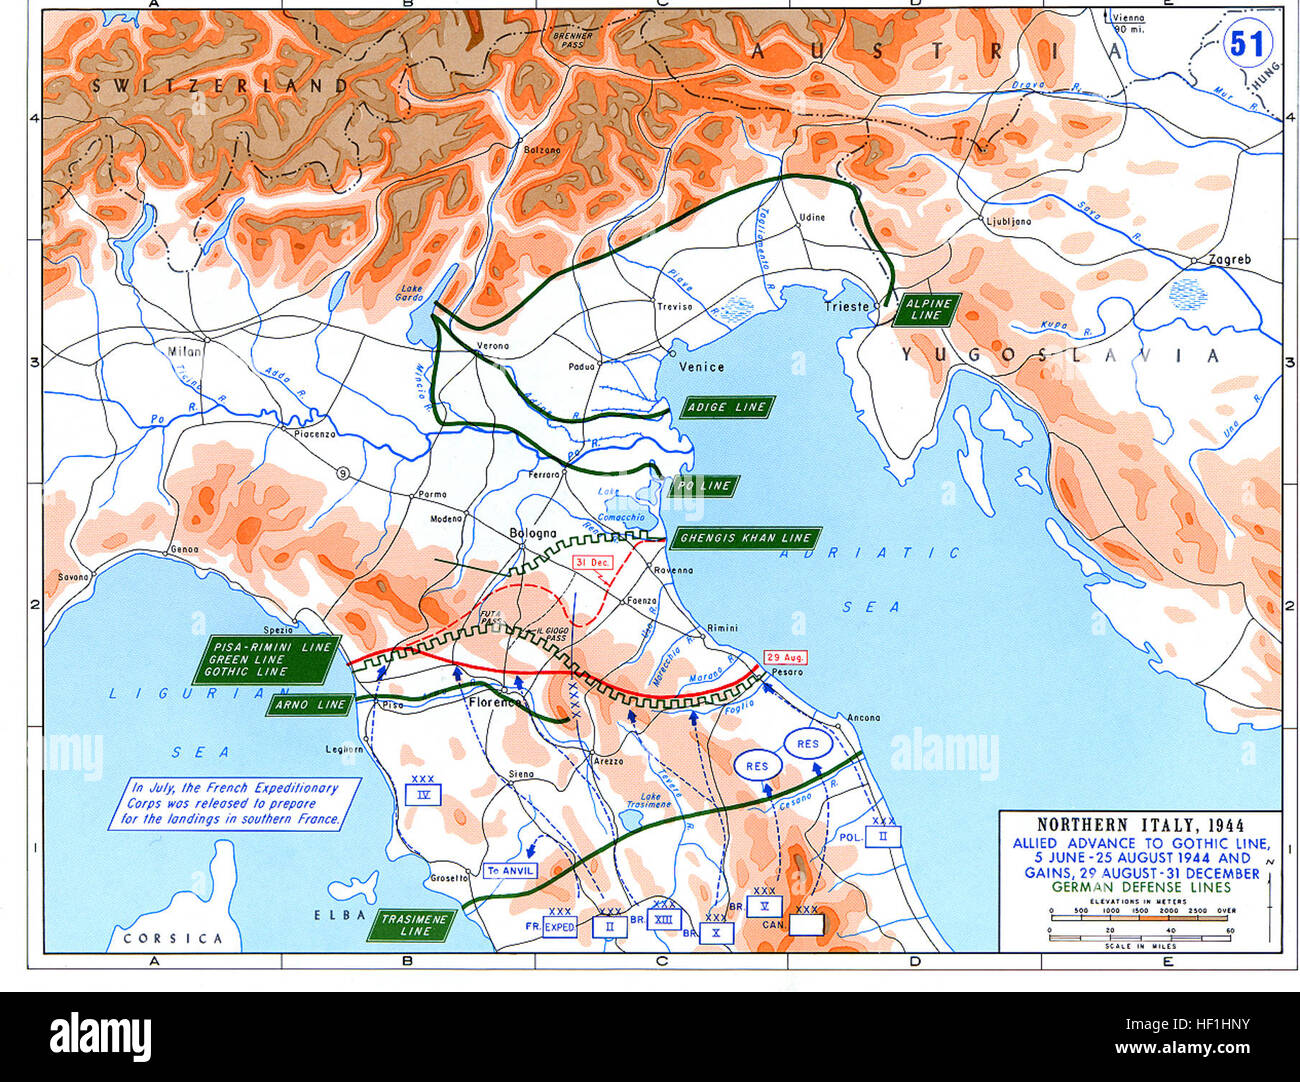 Ww2 europe map italy june until december 1944 Stock Photo: 129728311 ...